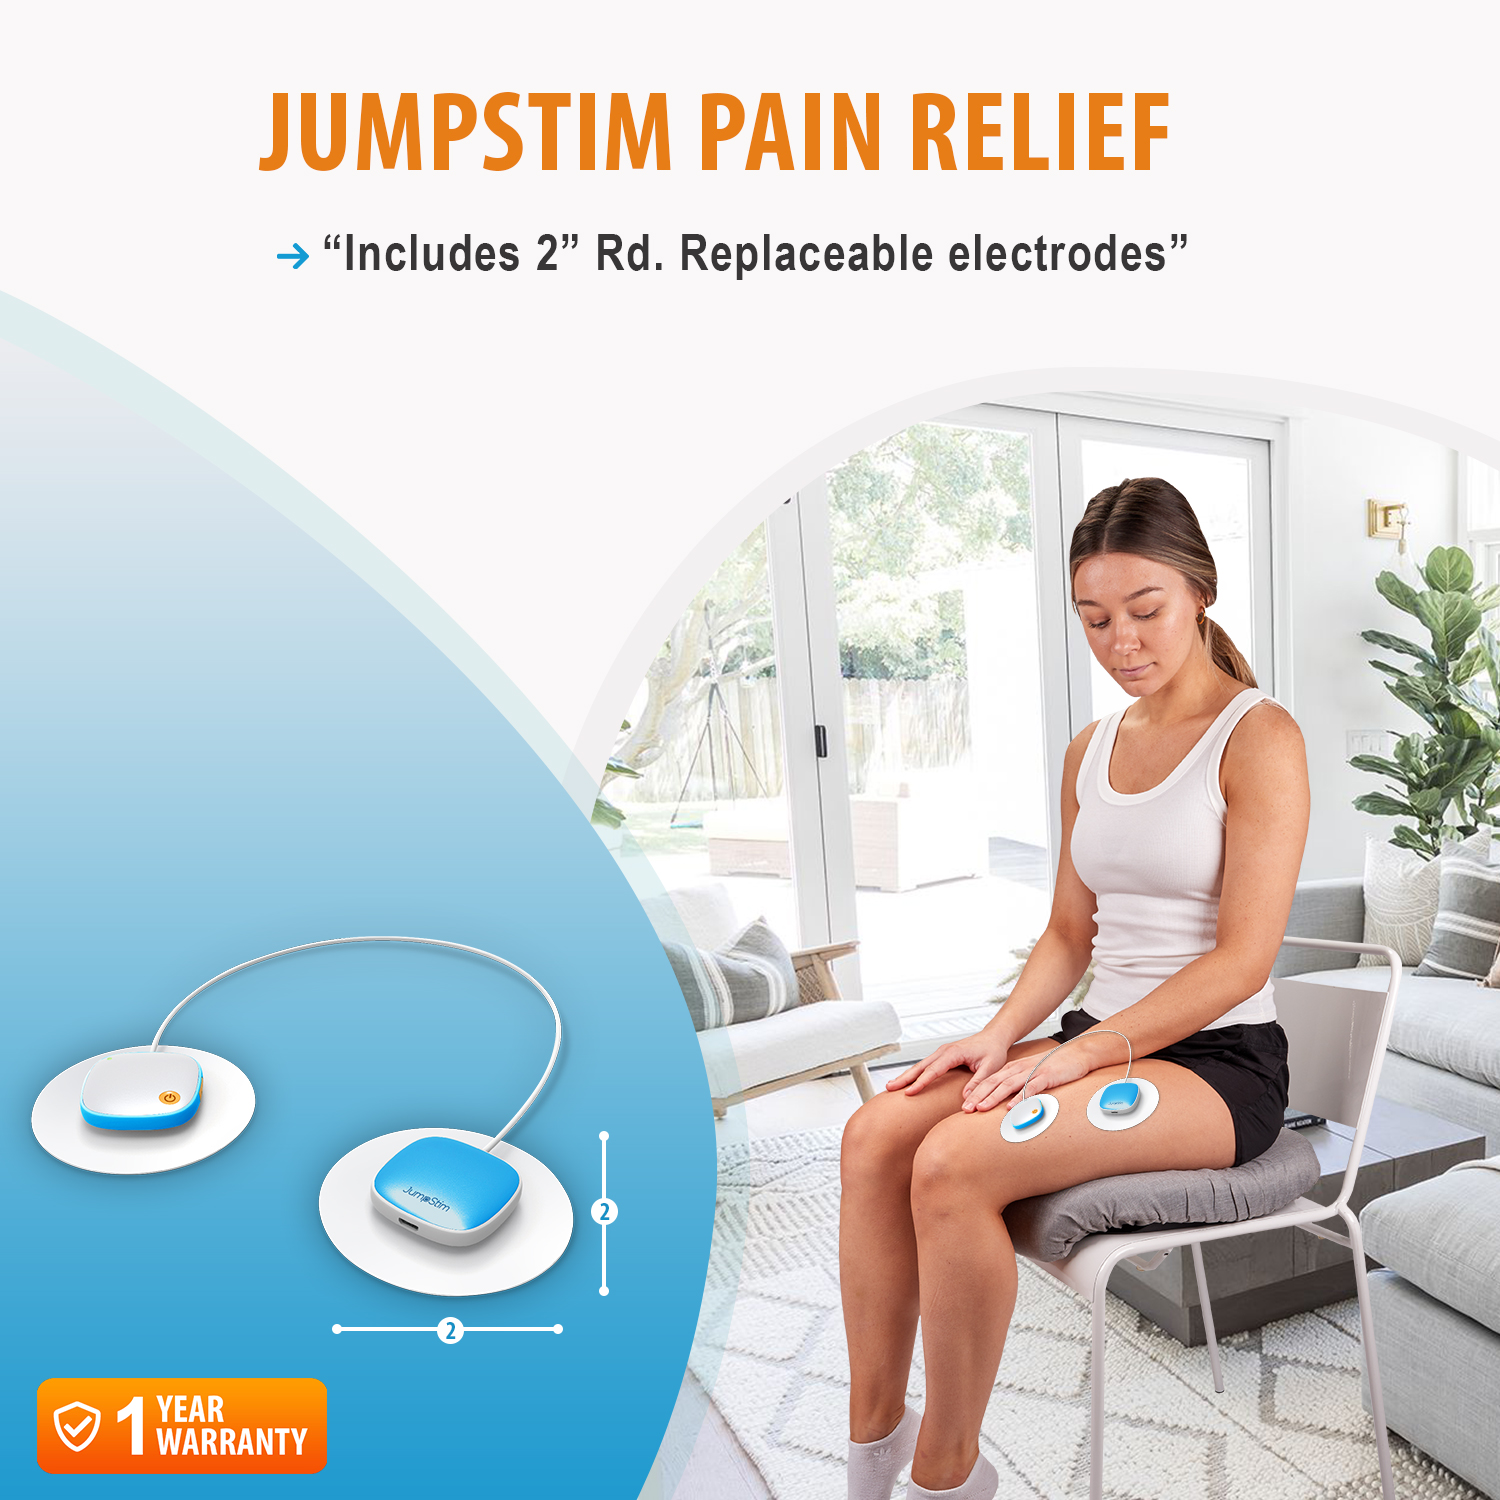 JumpStim TENS Muscle Massager Double Pad Electrode Stimulator – Rechargeable, Portable, Wearable Adhesive 5 Speed Massage Relief Therapy Device for Back Pain, Neck Strain, Achy Feet, Sports Injury